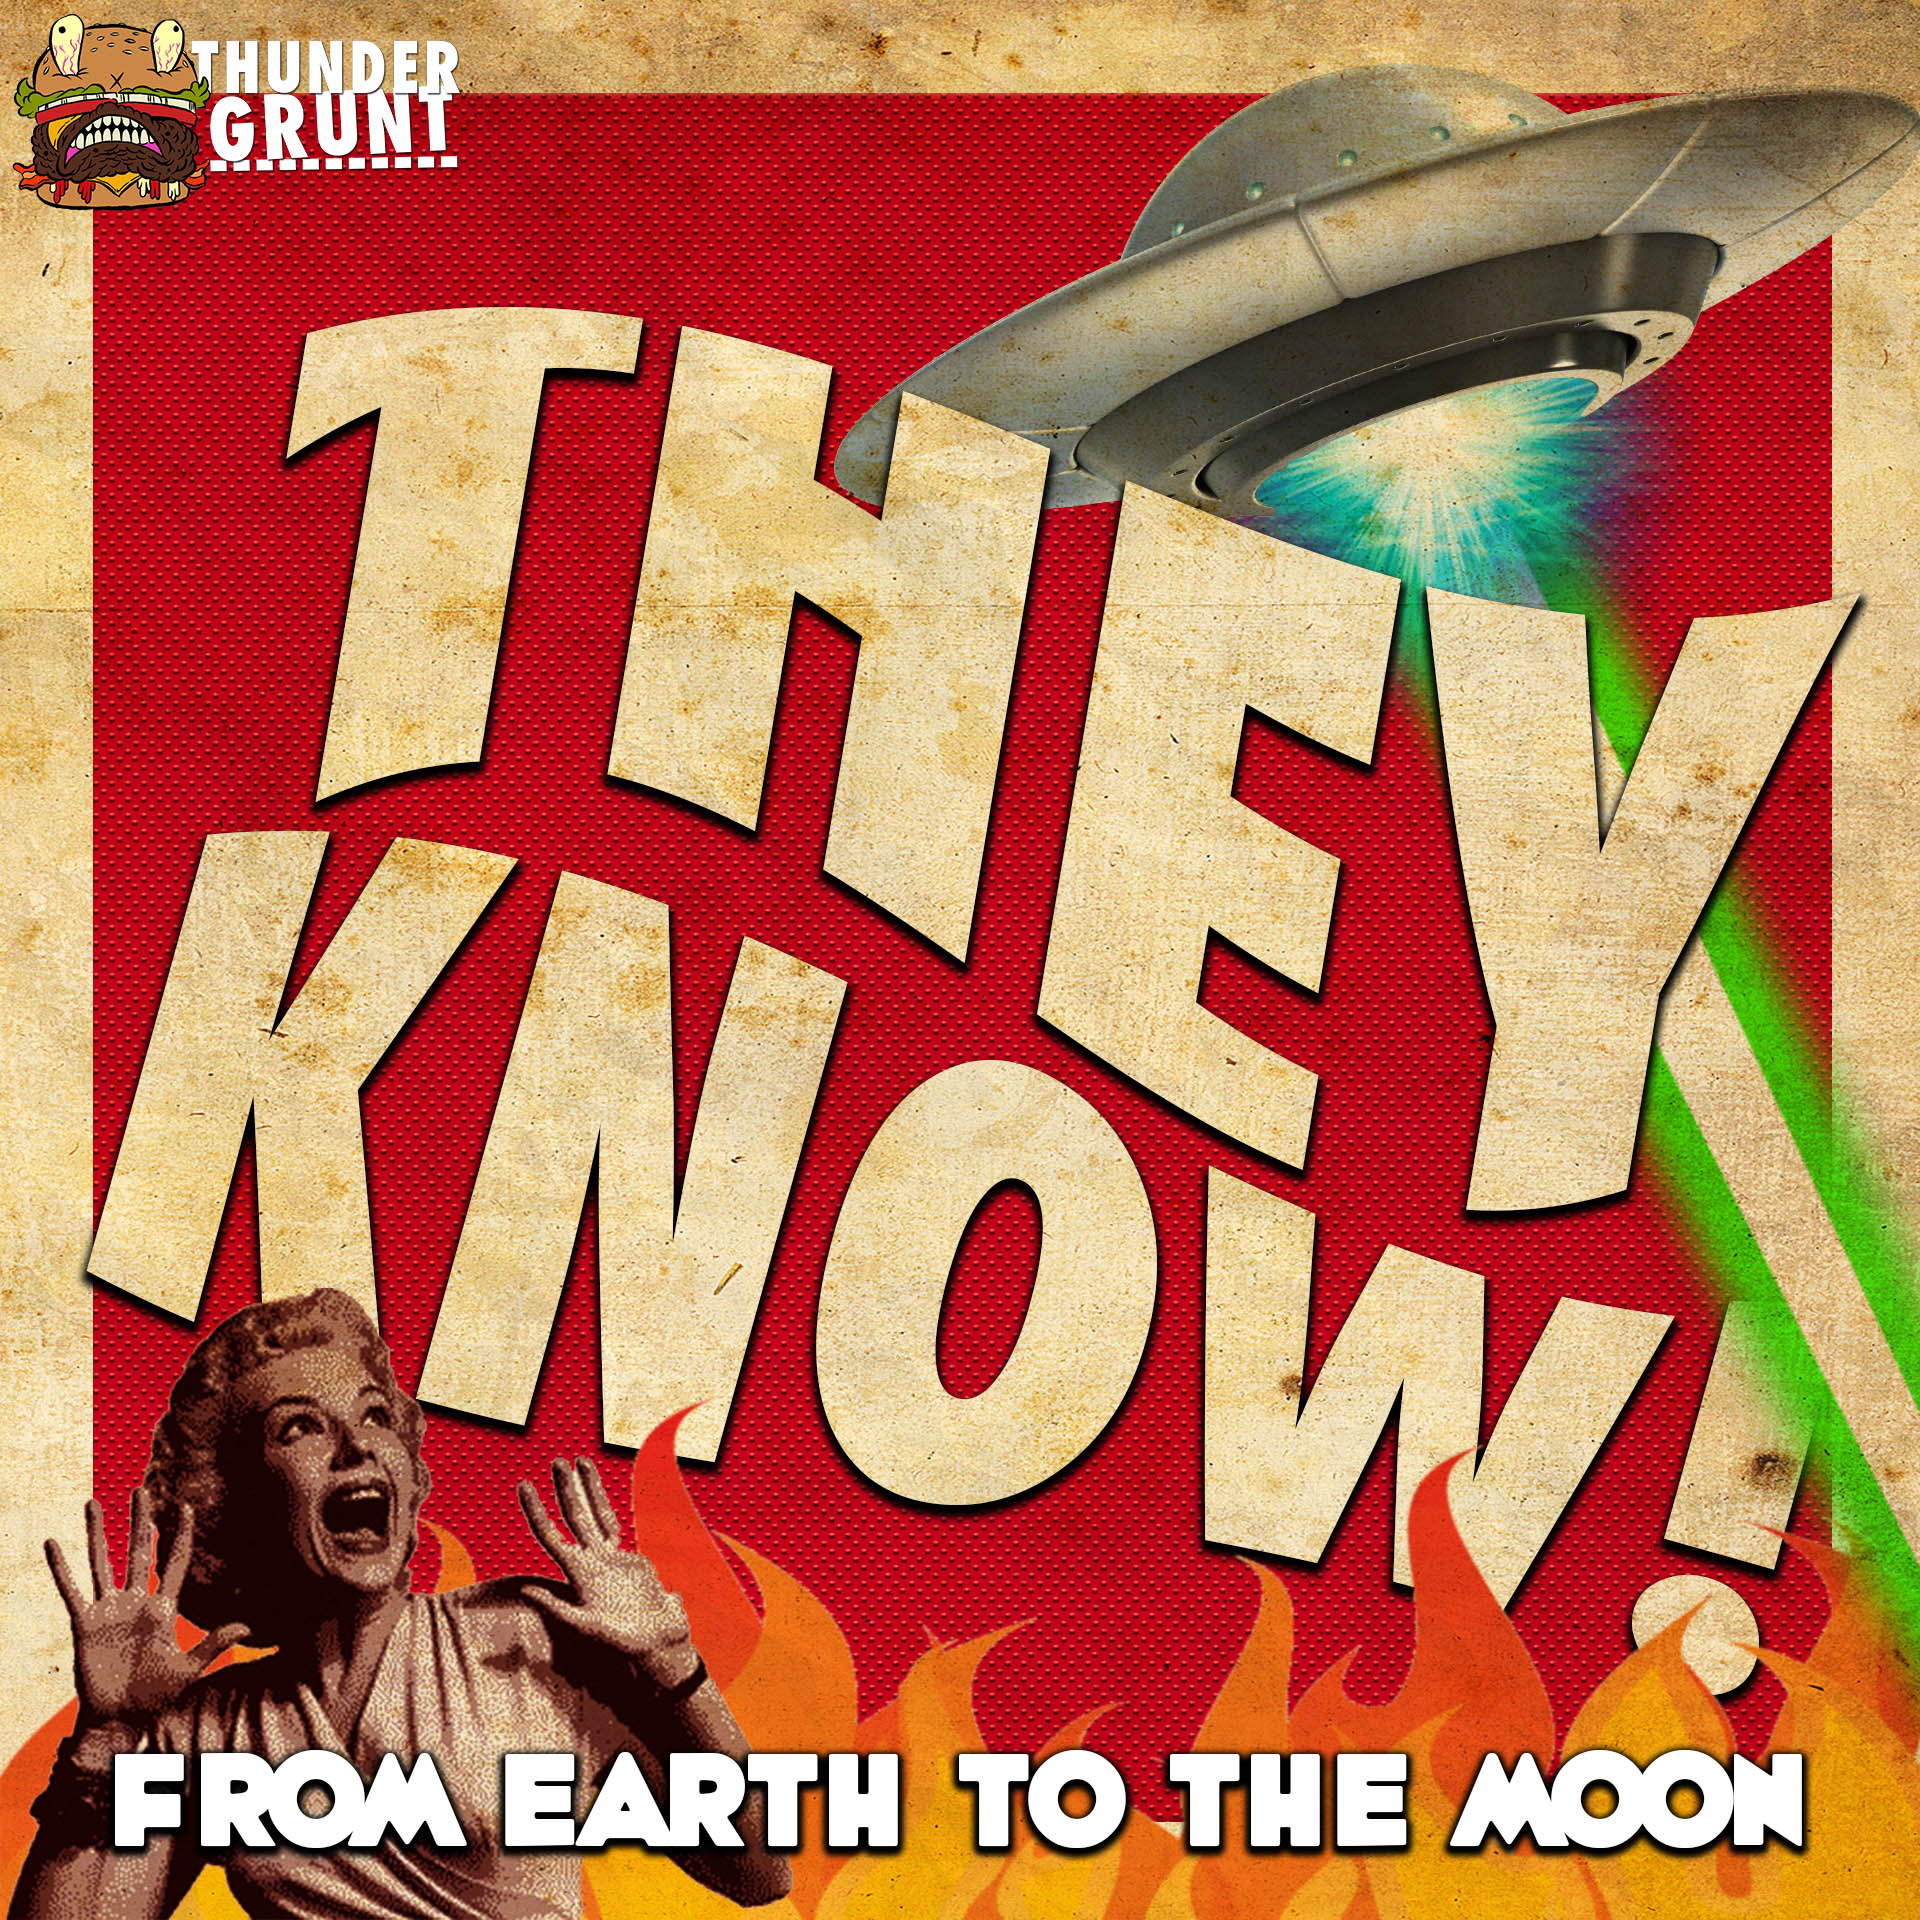 THEY KNOW! 008 | FROM EARTH TO THE MOON